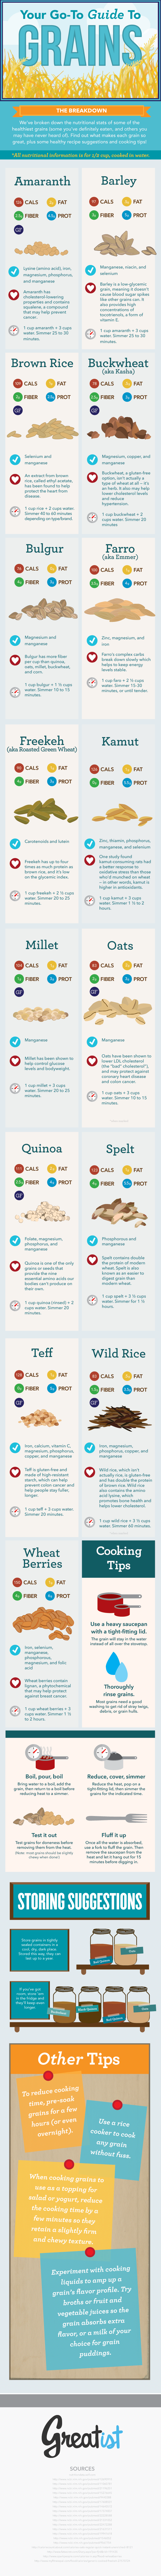 List of 15 Types Whole Grains and Their Benefits [Infographic]